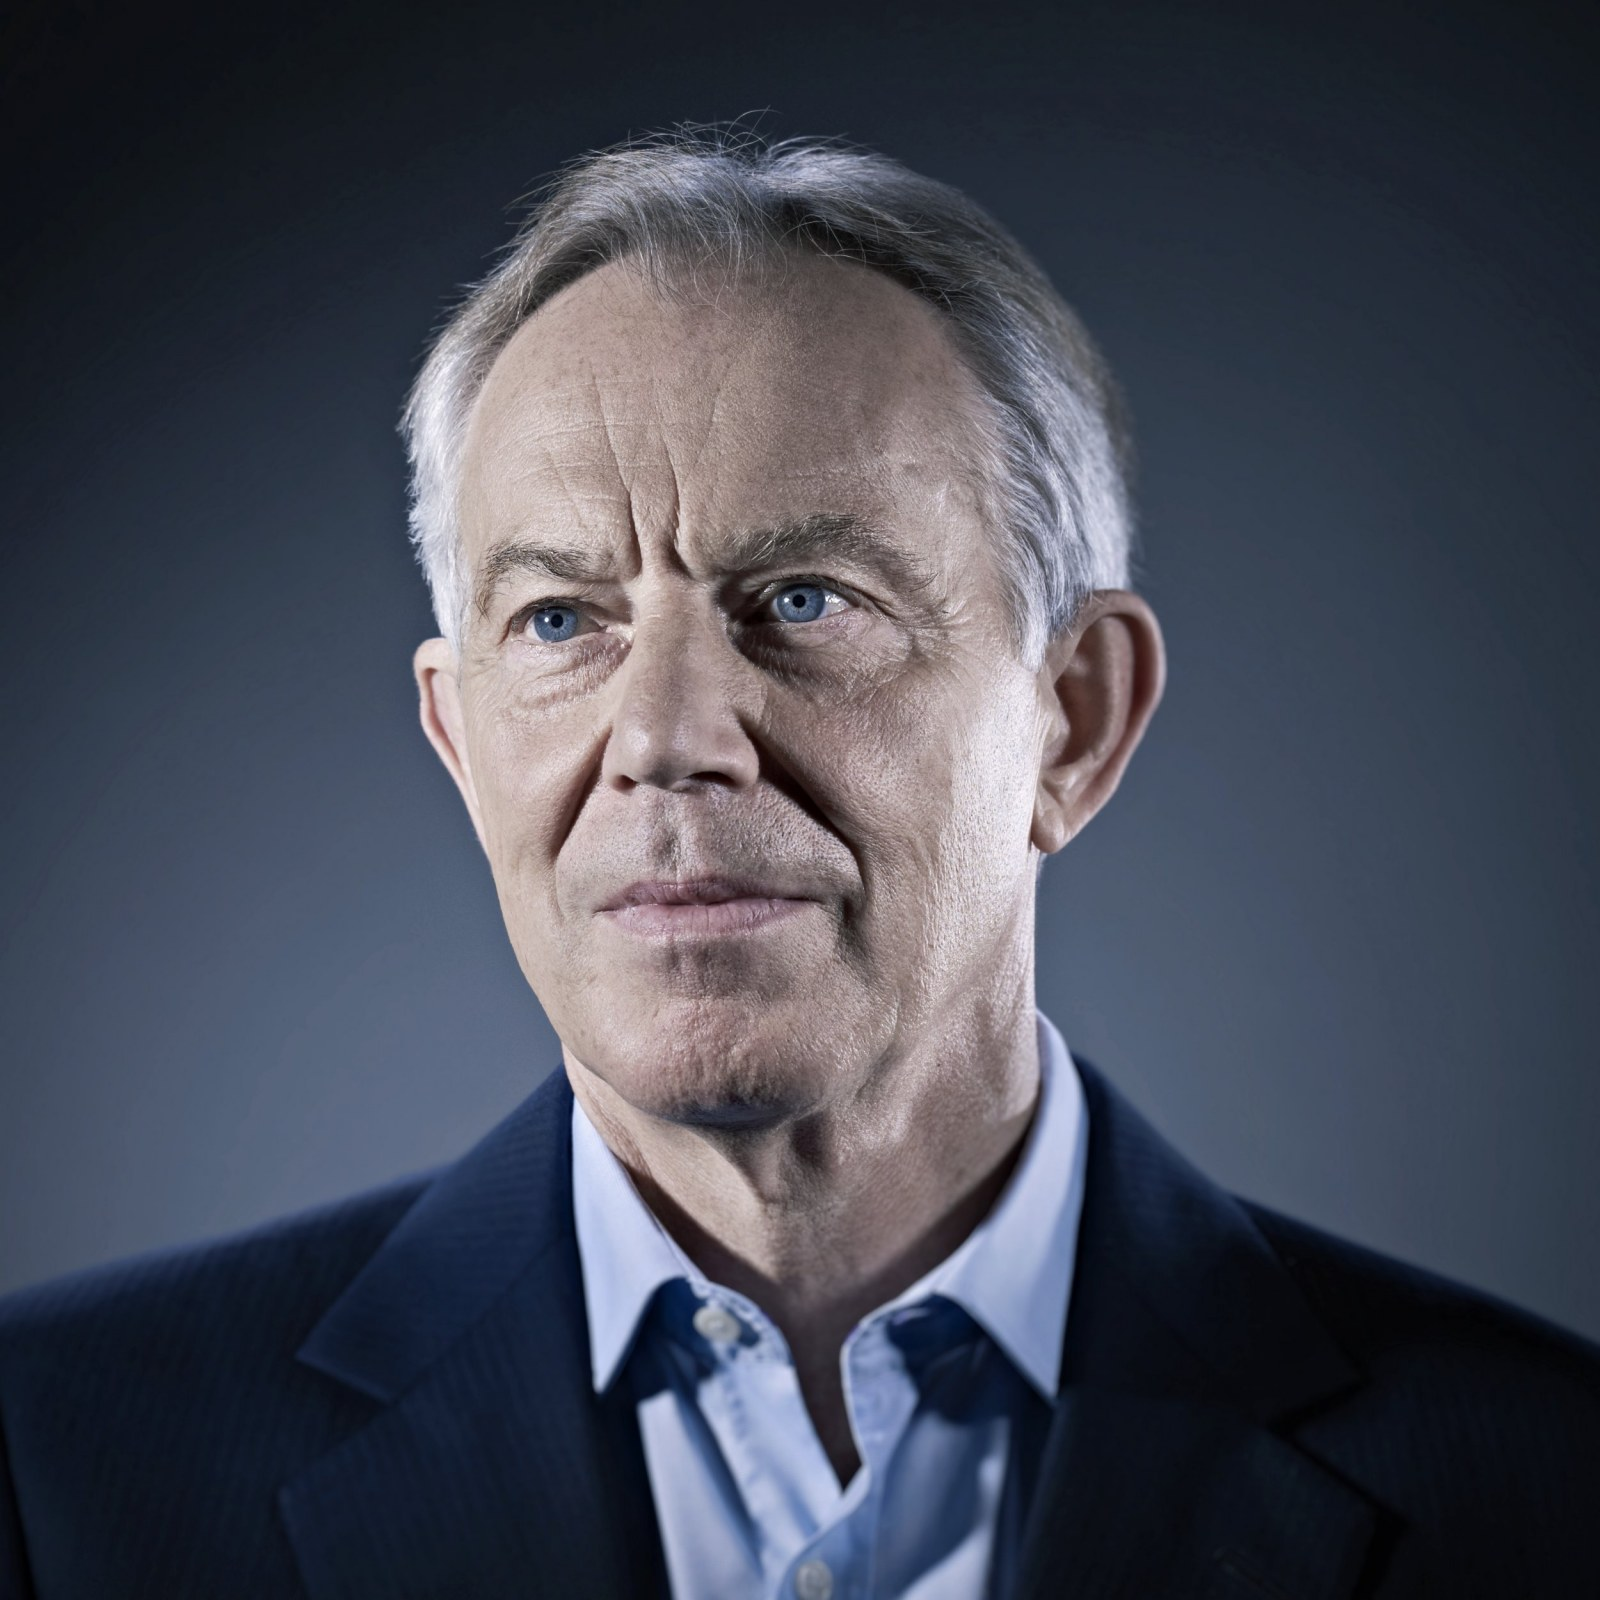 Inside the Mind of Tony Blair: The Newsweek Interview